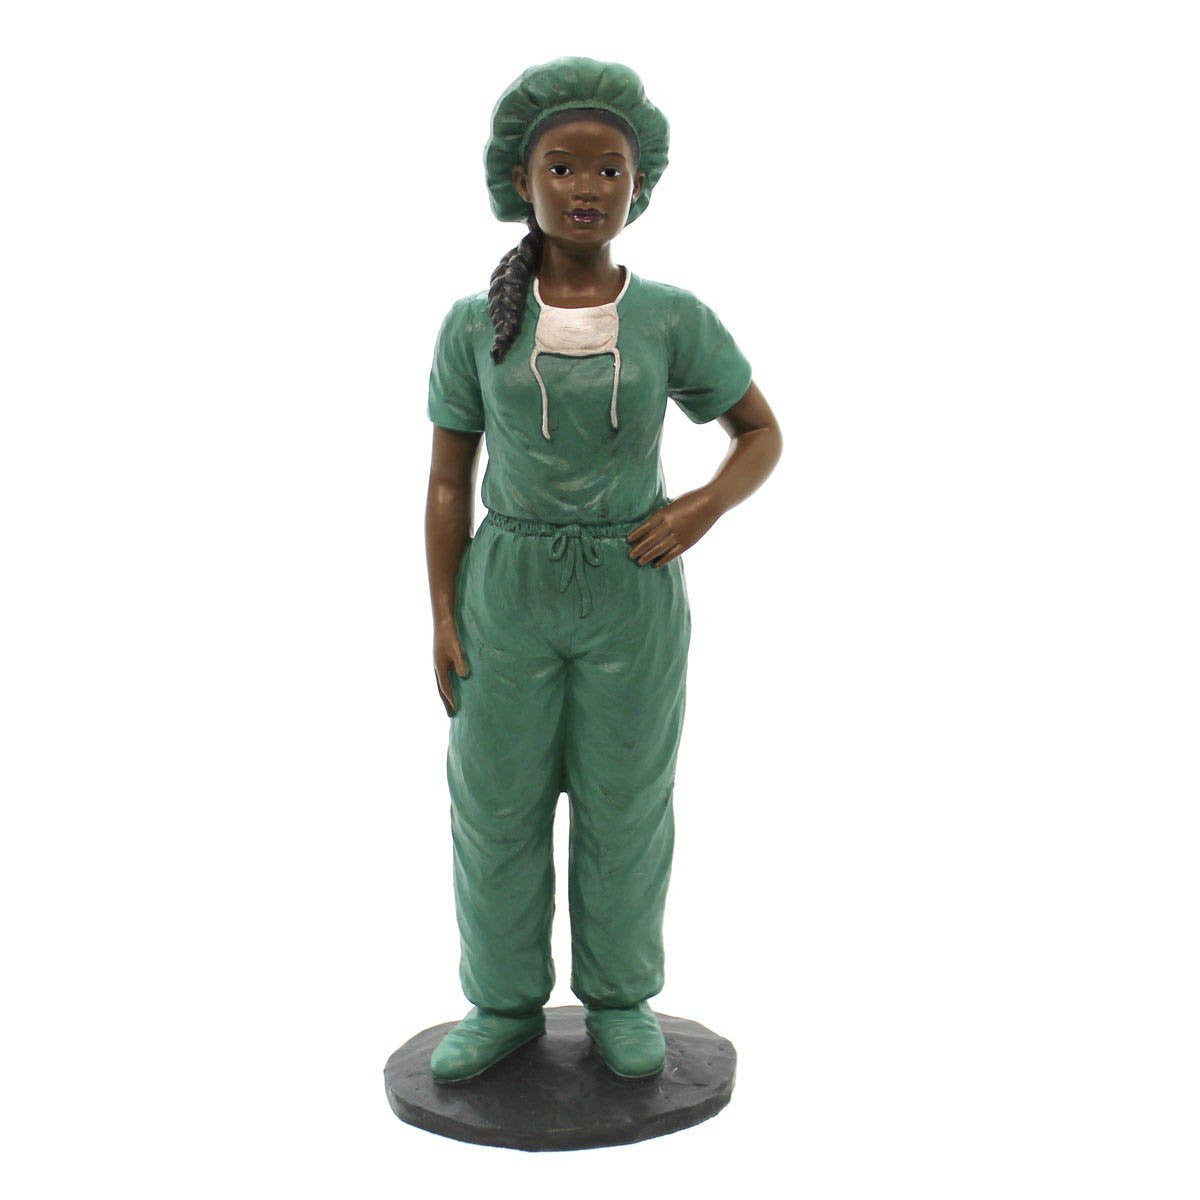 African American Female Nurse Figurine by Positive Image Gifts